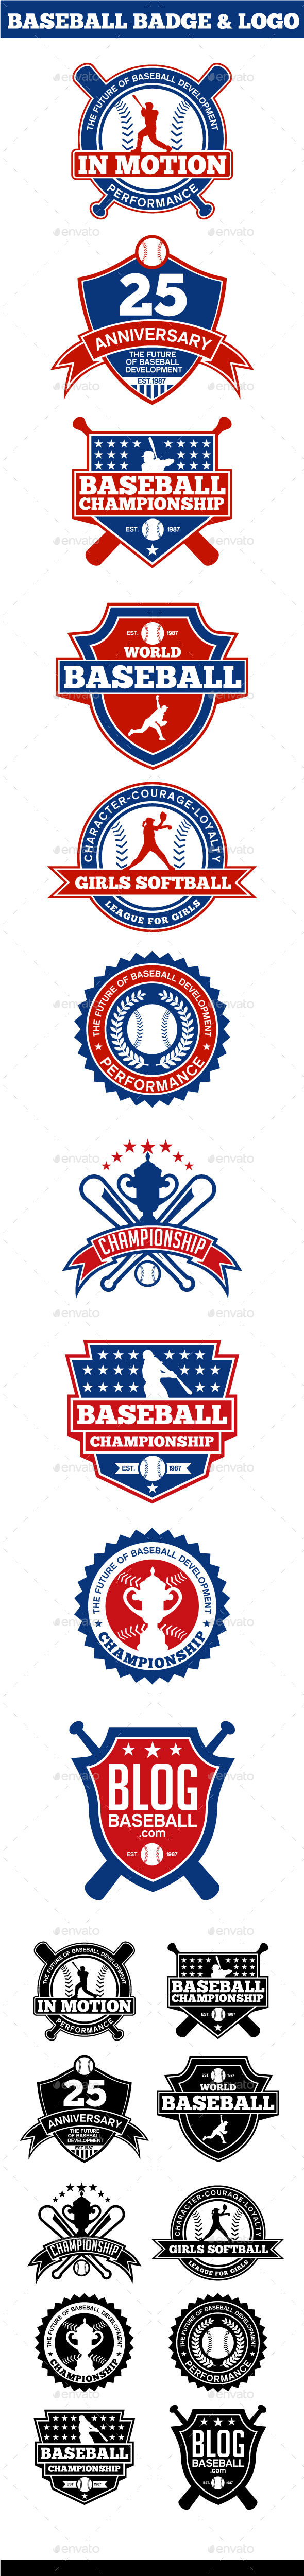 GraphicRiver Baseball Badge & Logo 11341715